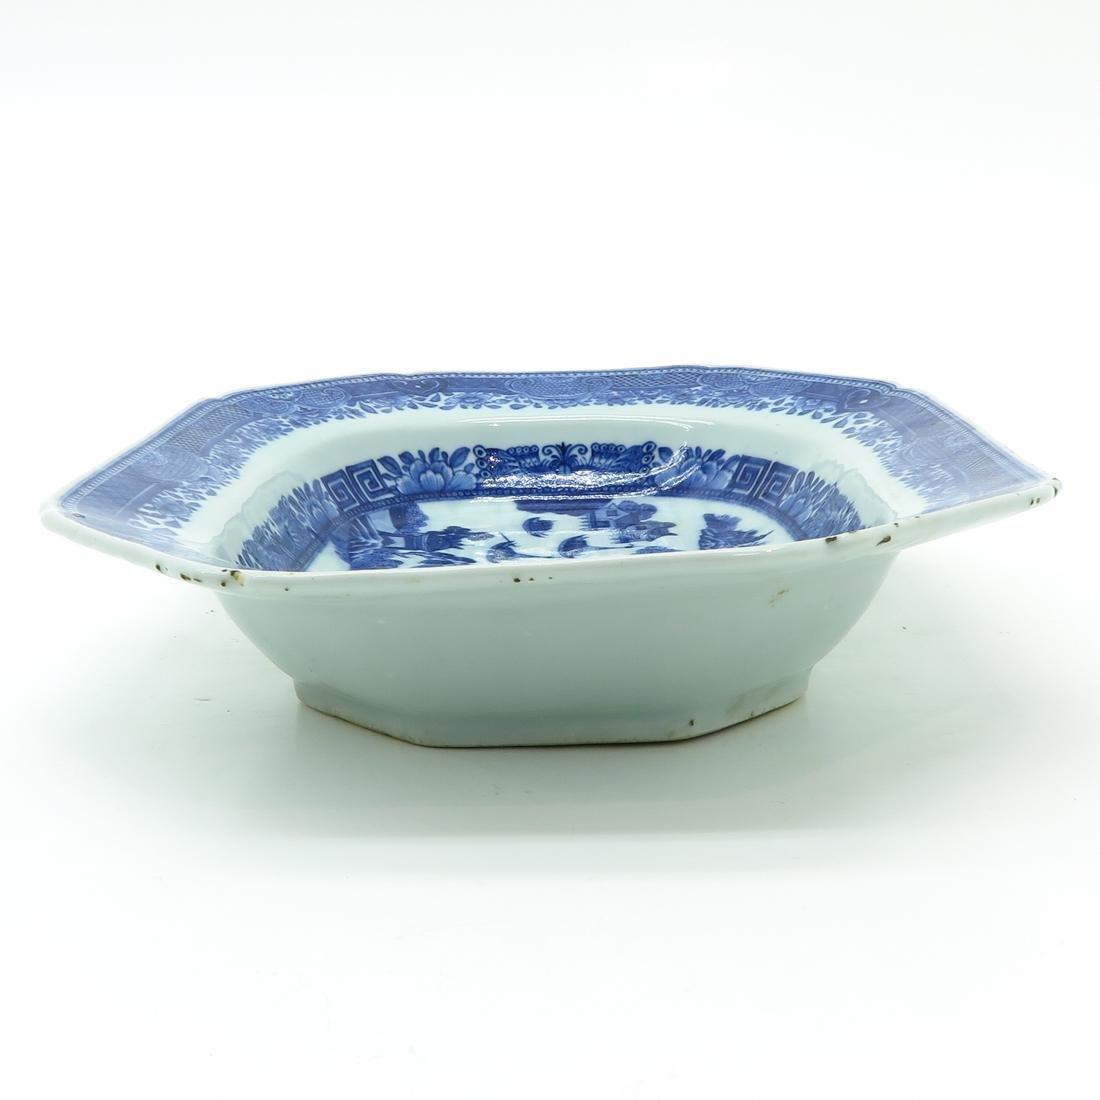 Serving Plate - 4